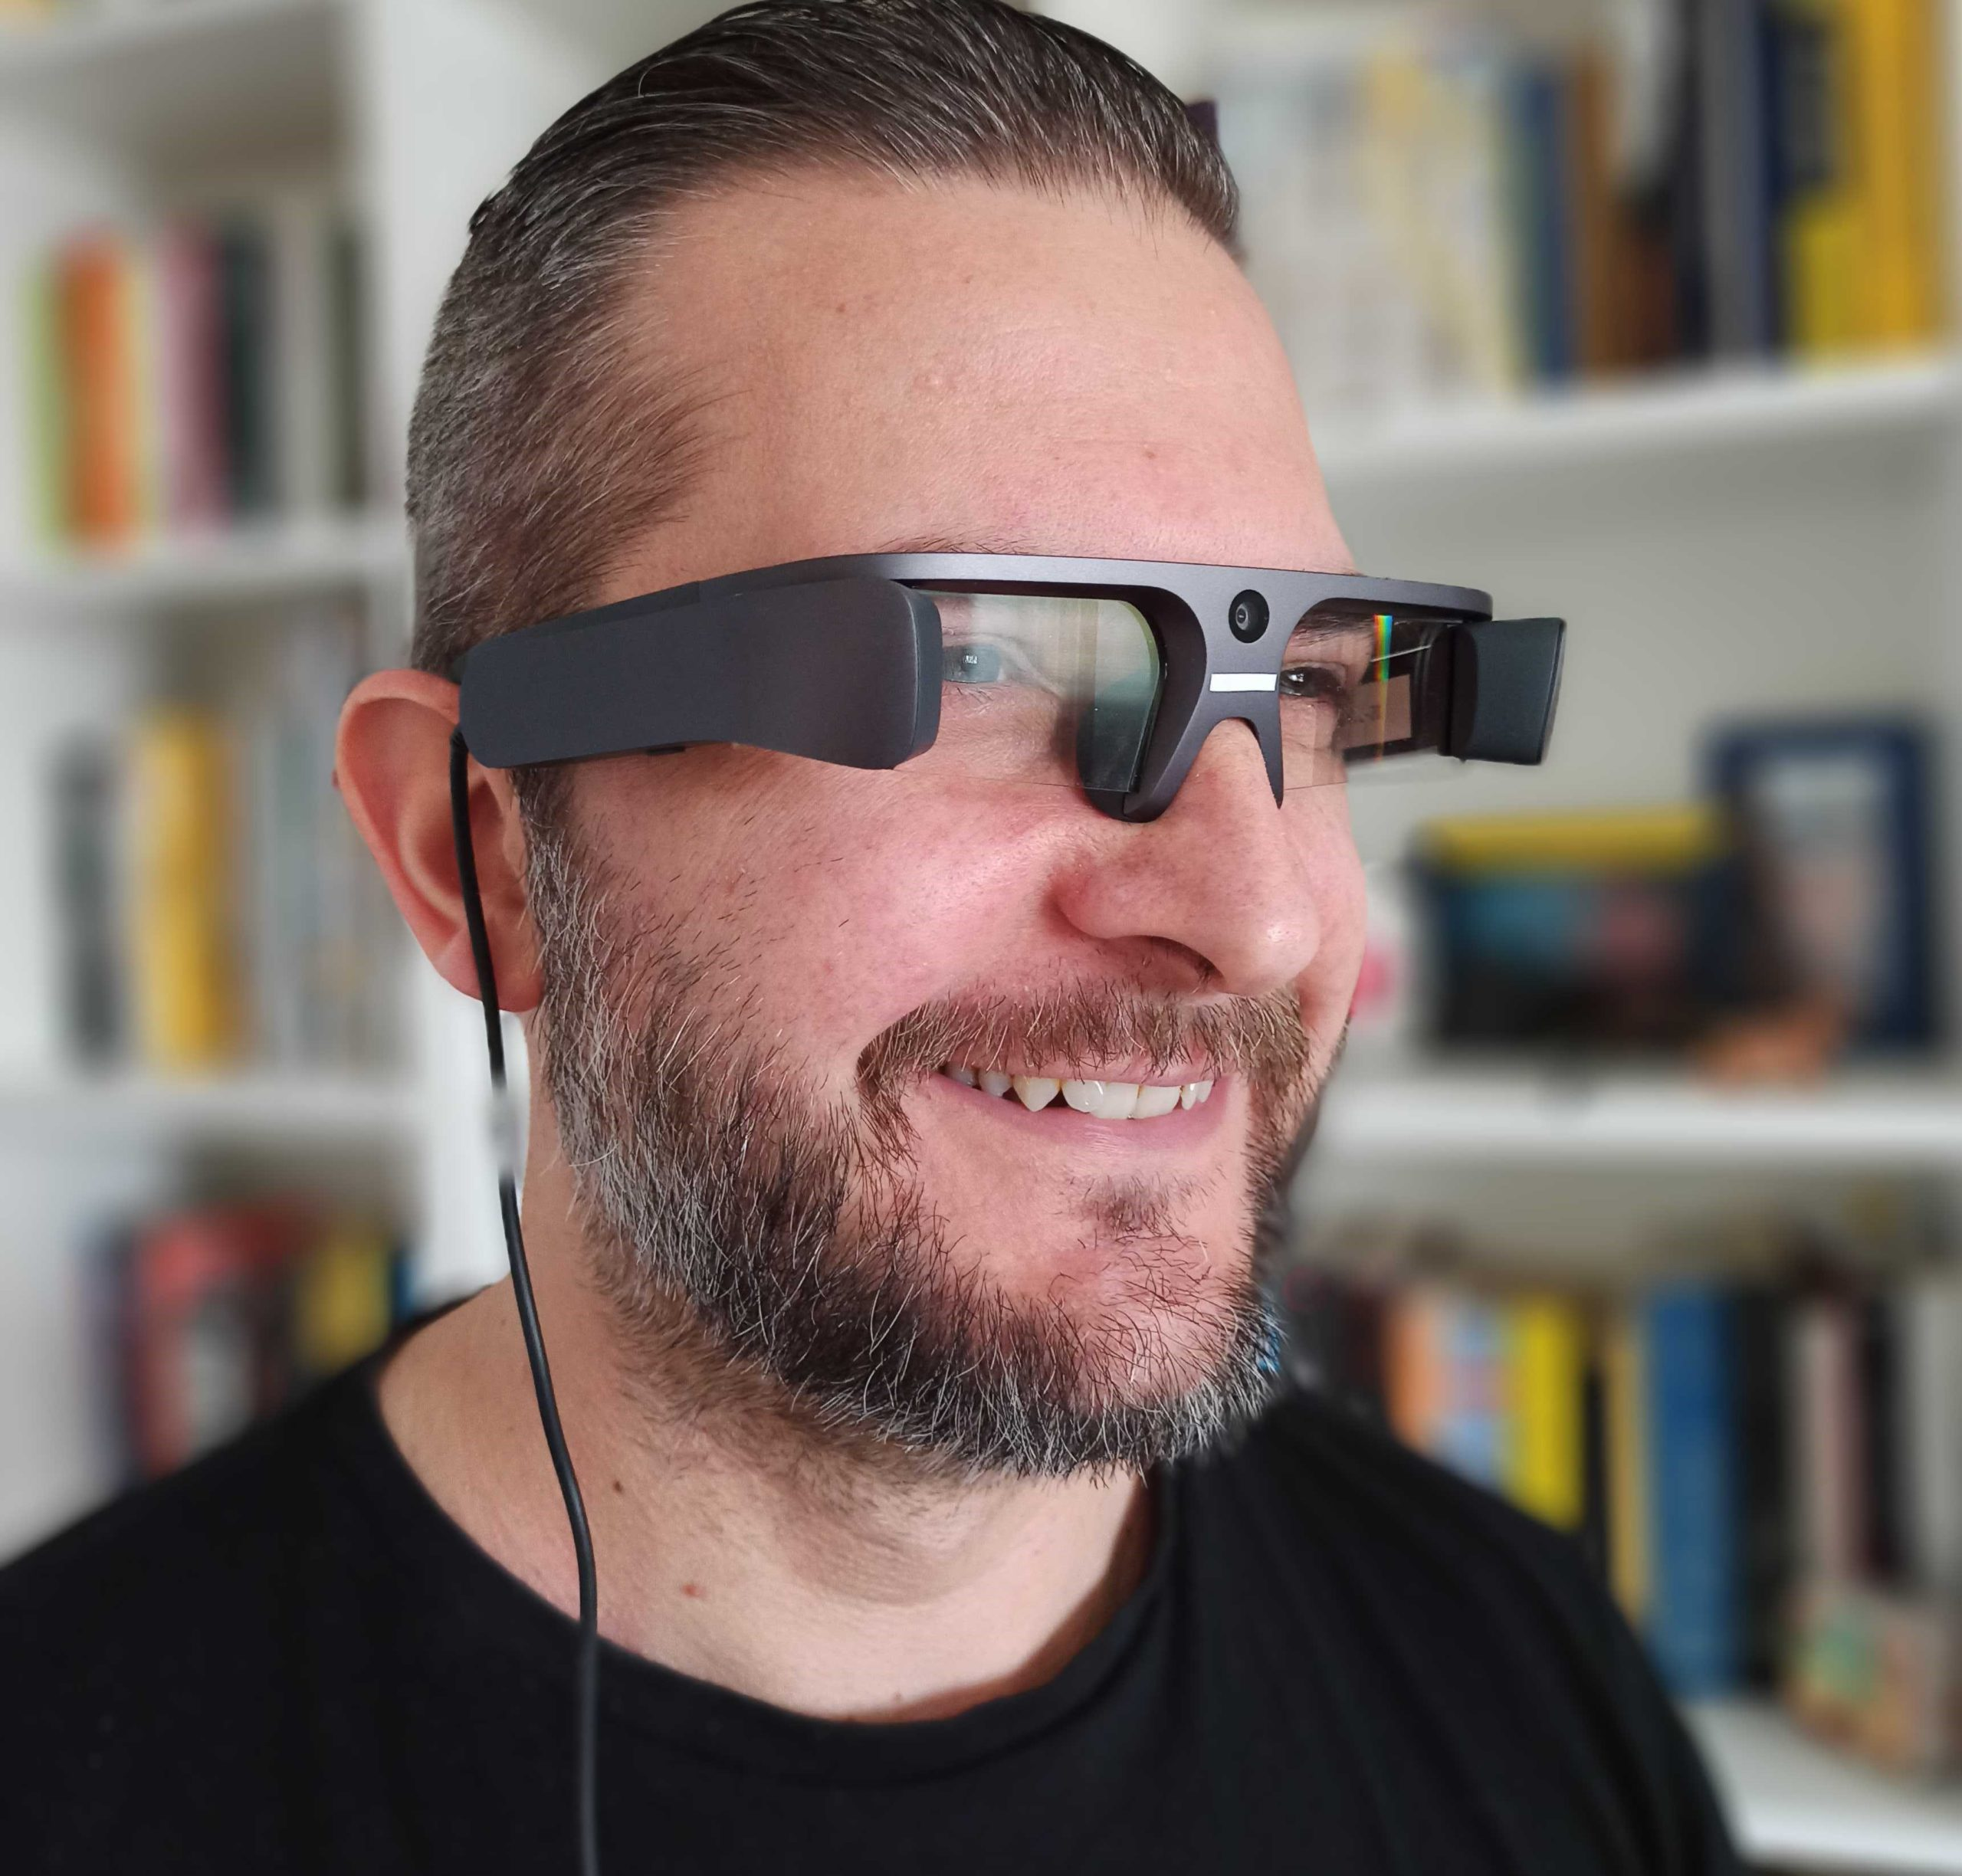 CEO JoinPad with LEION smart glasses by LLVision